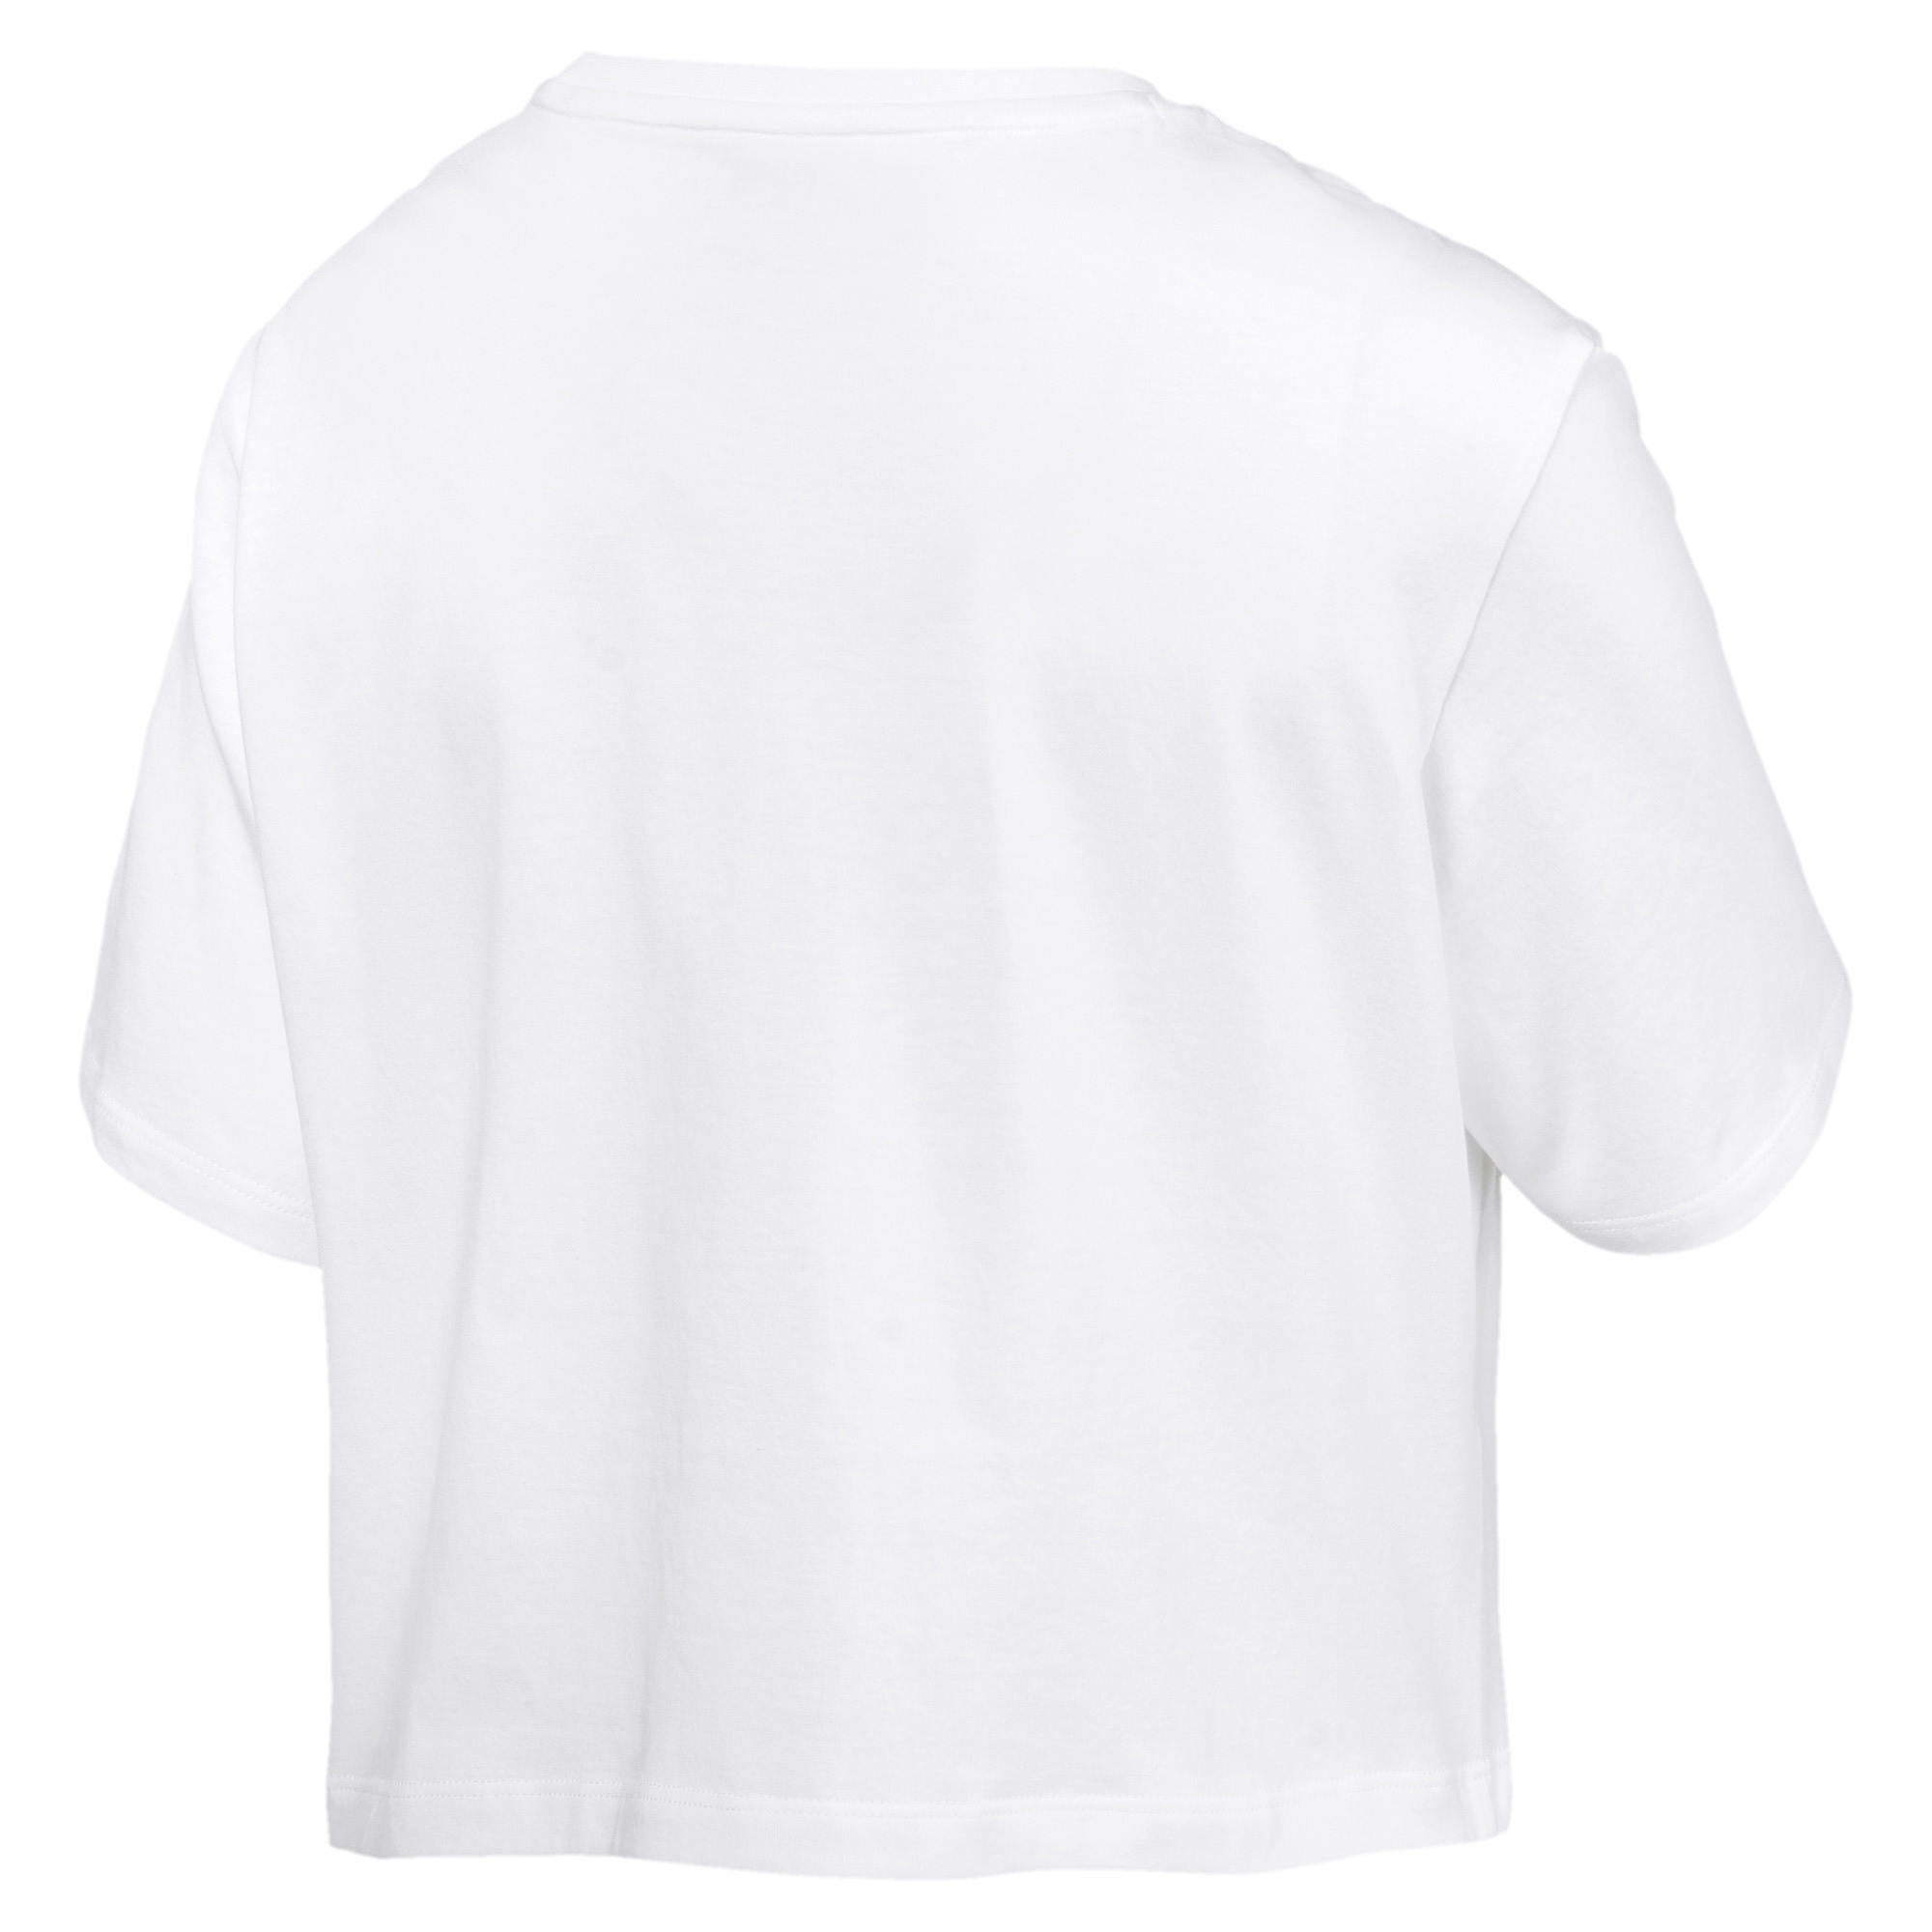 PUMA-Women-039-s-Cropped-Logo-Tee-Women-Crop-Top-Basics thumbnail 9